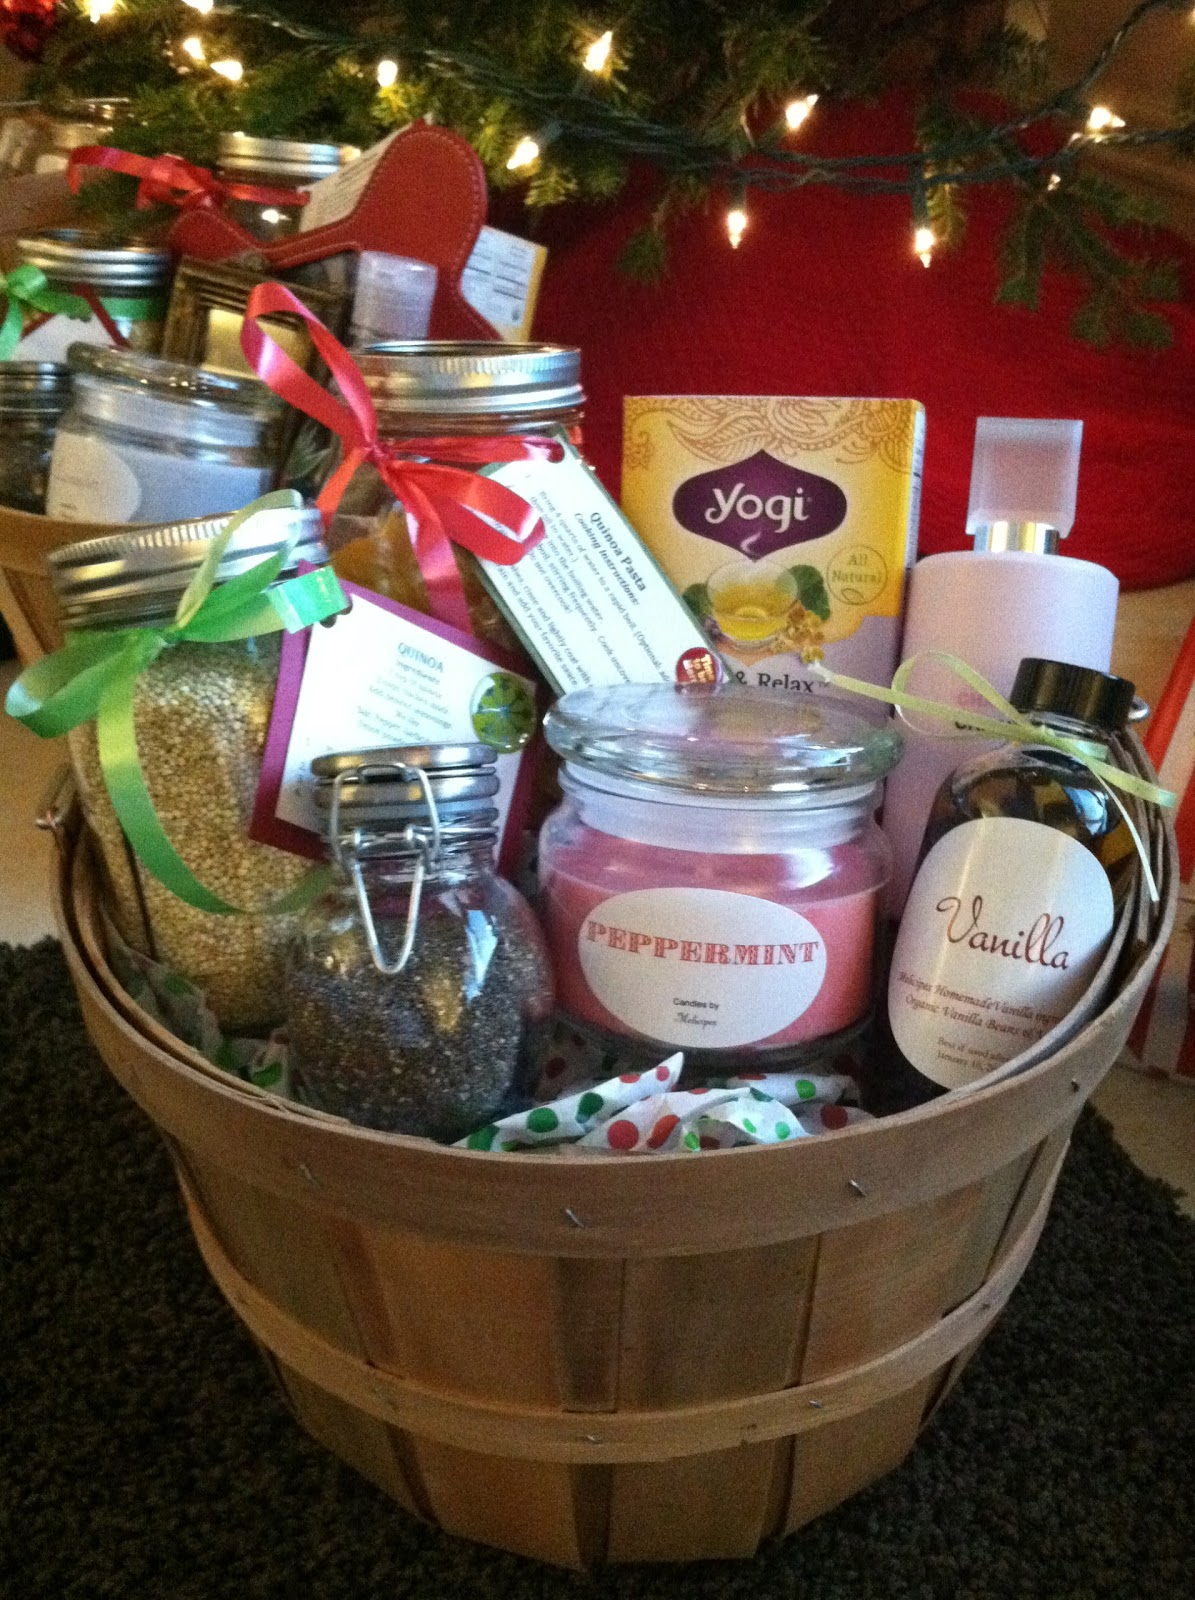 what makes me love this gift idea so much is that most of it is homemade or includes our own personal touches